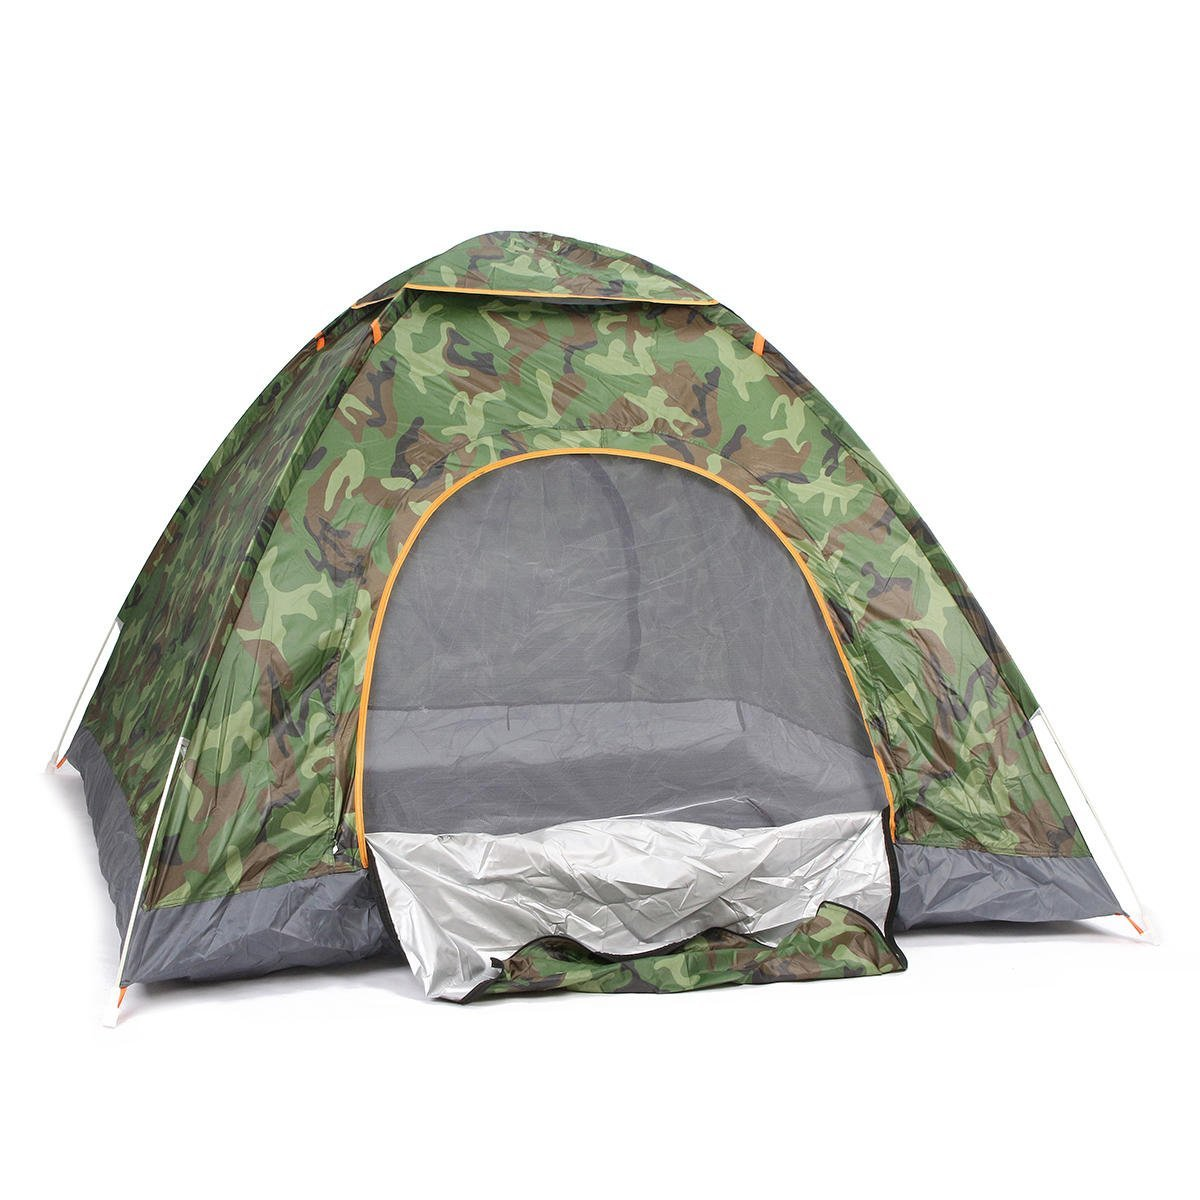 Automated Wide Sunblind - Outdoor Person Camping Tent Automatic Waterproof Beach Sunshade Canopy - Self-Activating Artless Visible Self-Moving Unprotected Blazing Self-Loading - 1PCs